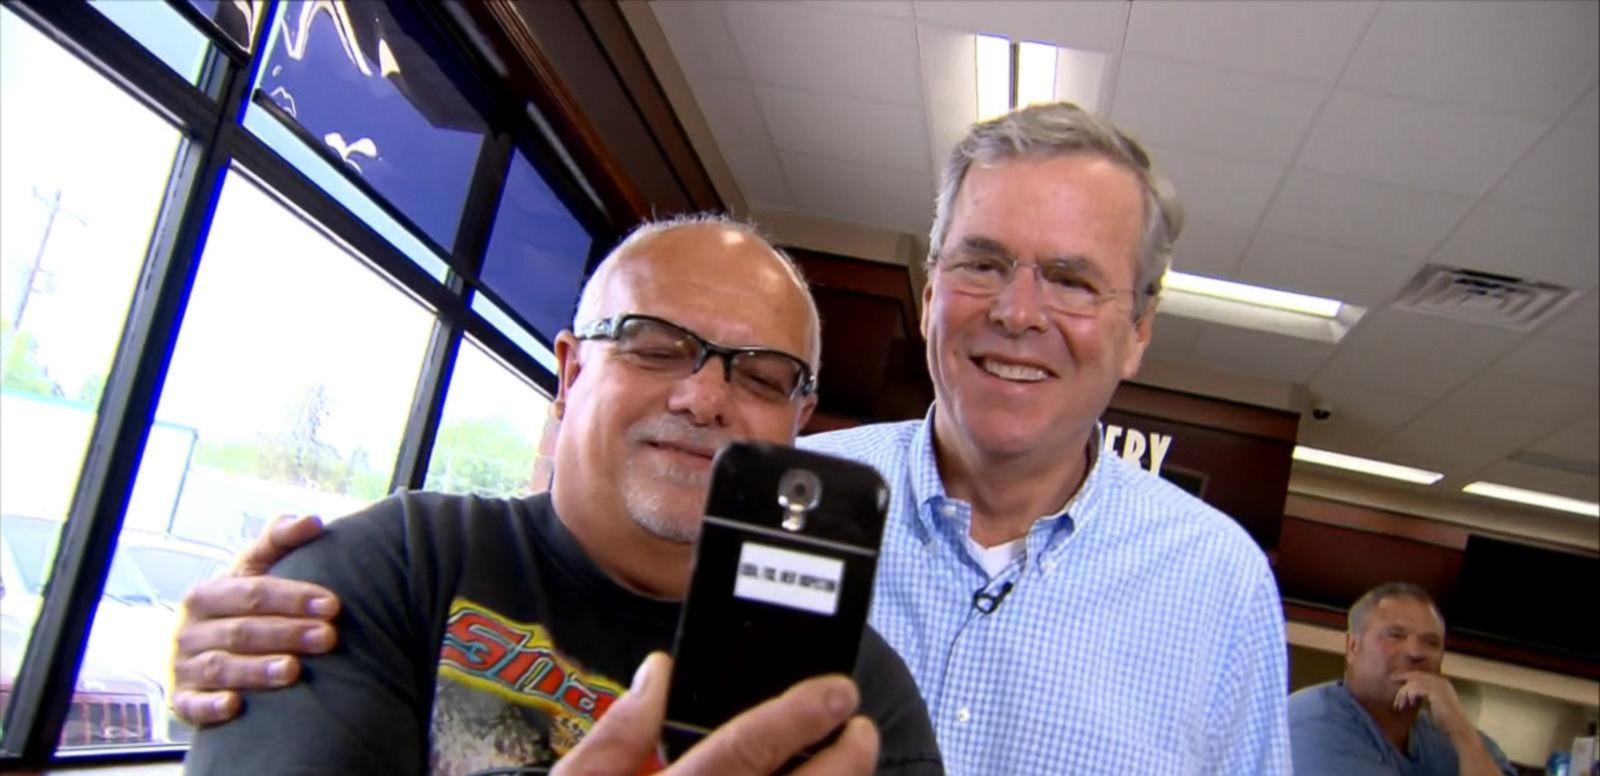 VIDEO: Jeb Bushs Selfie Snafu